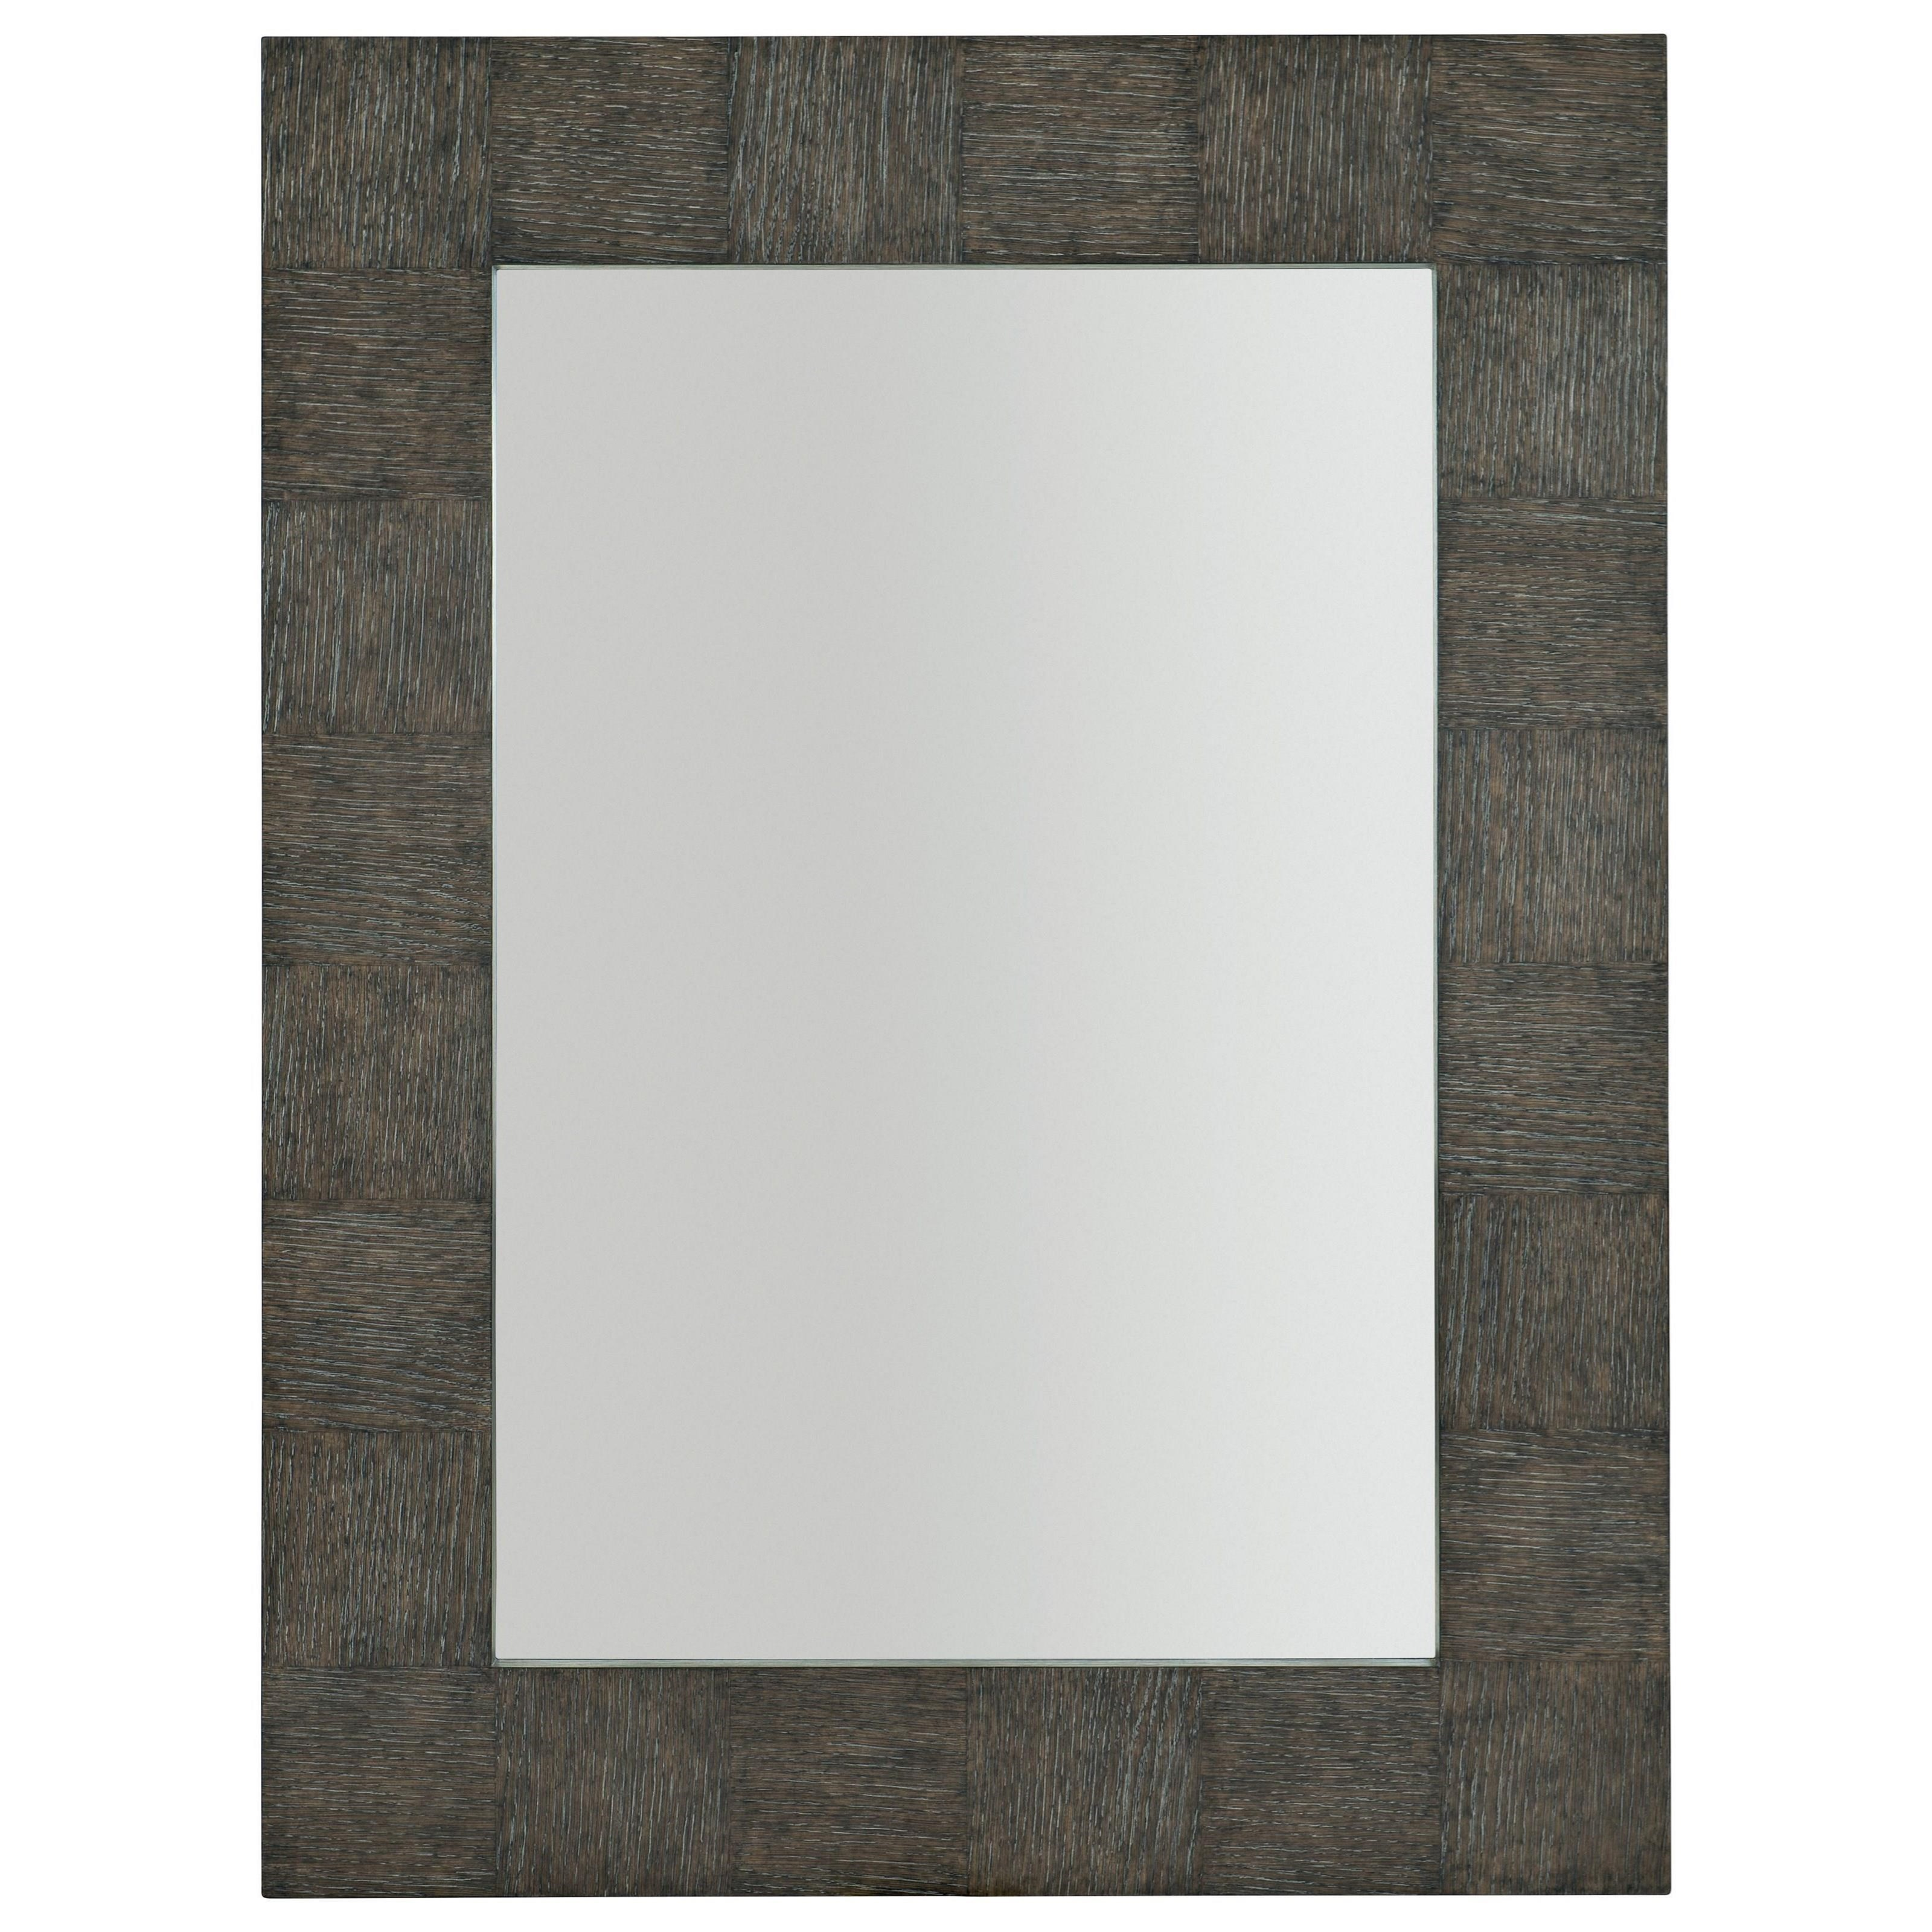 Linea Mirror at Williams & Kay